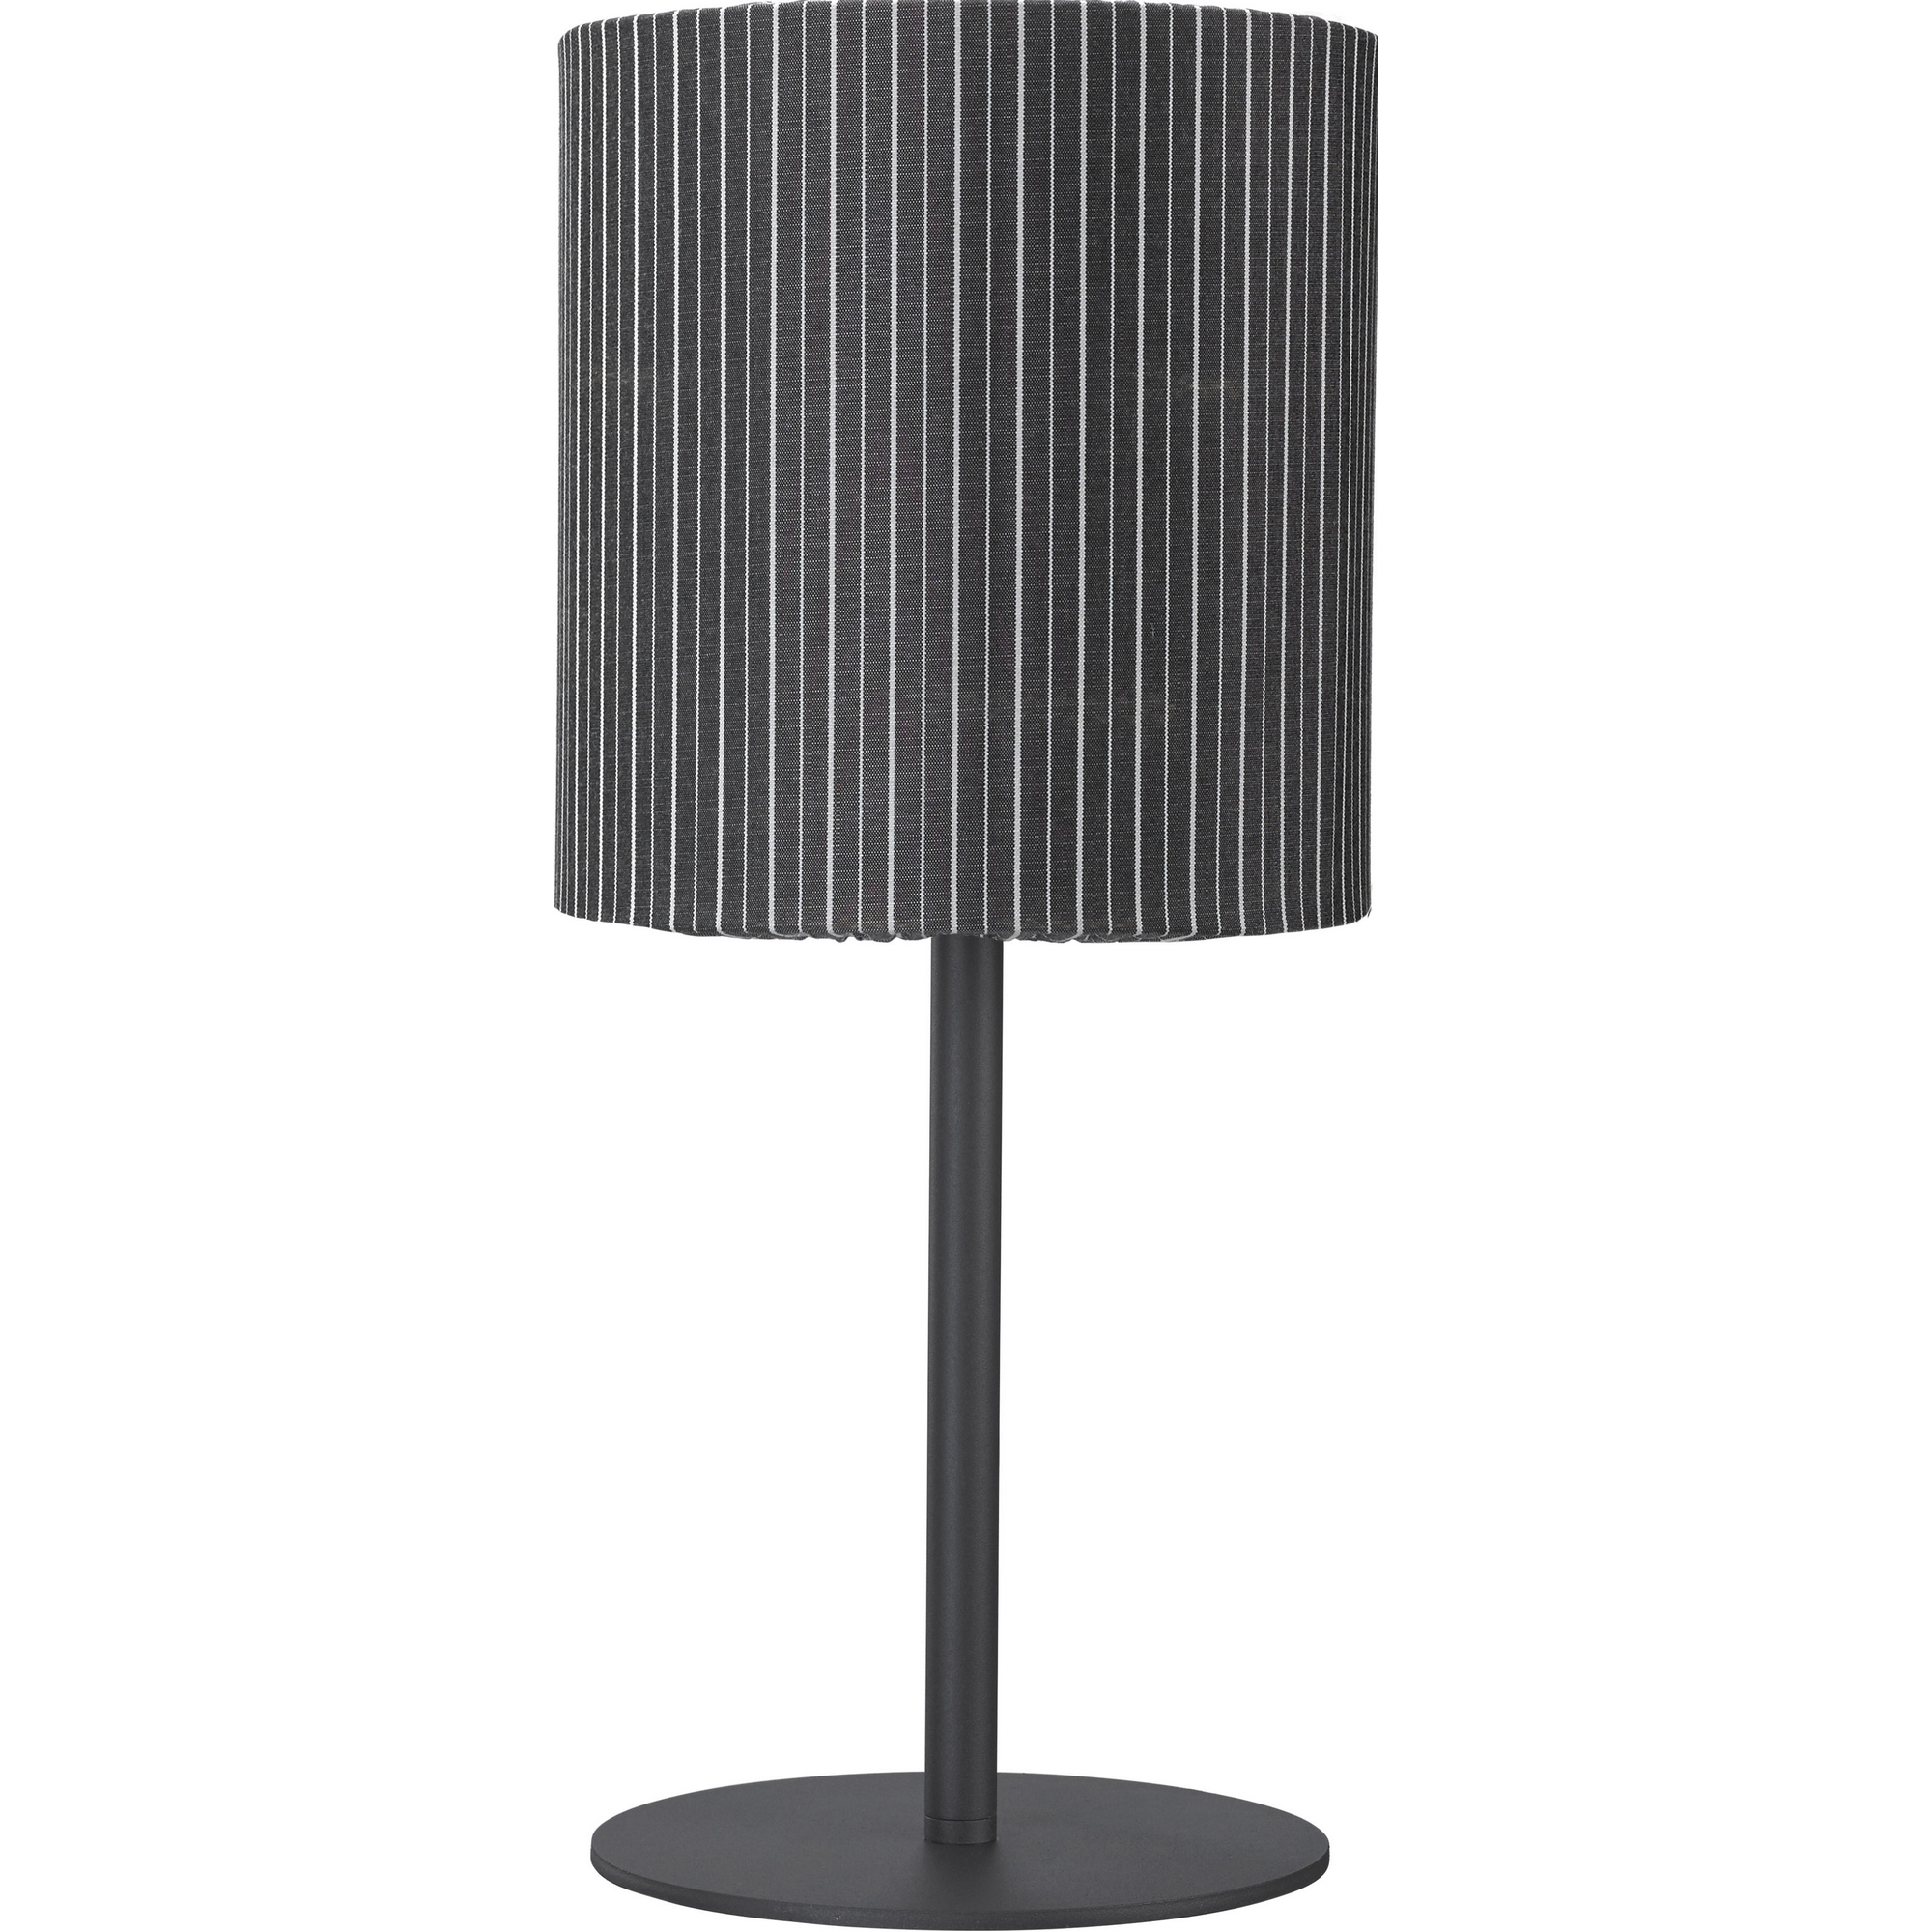 Bordslampa PR Home Agnar Outdoor